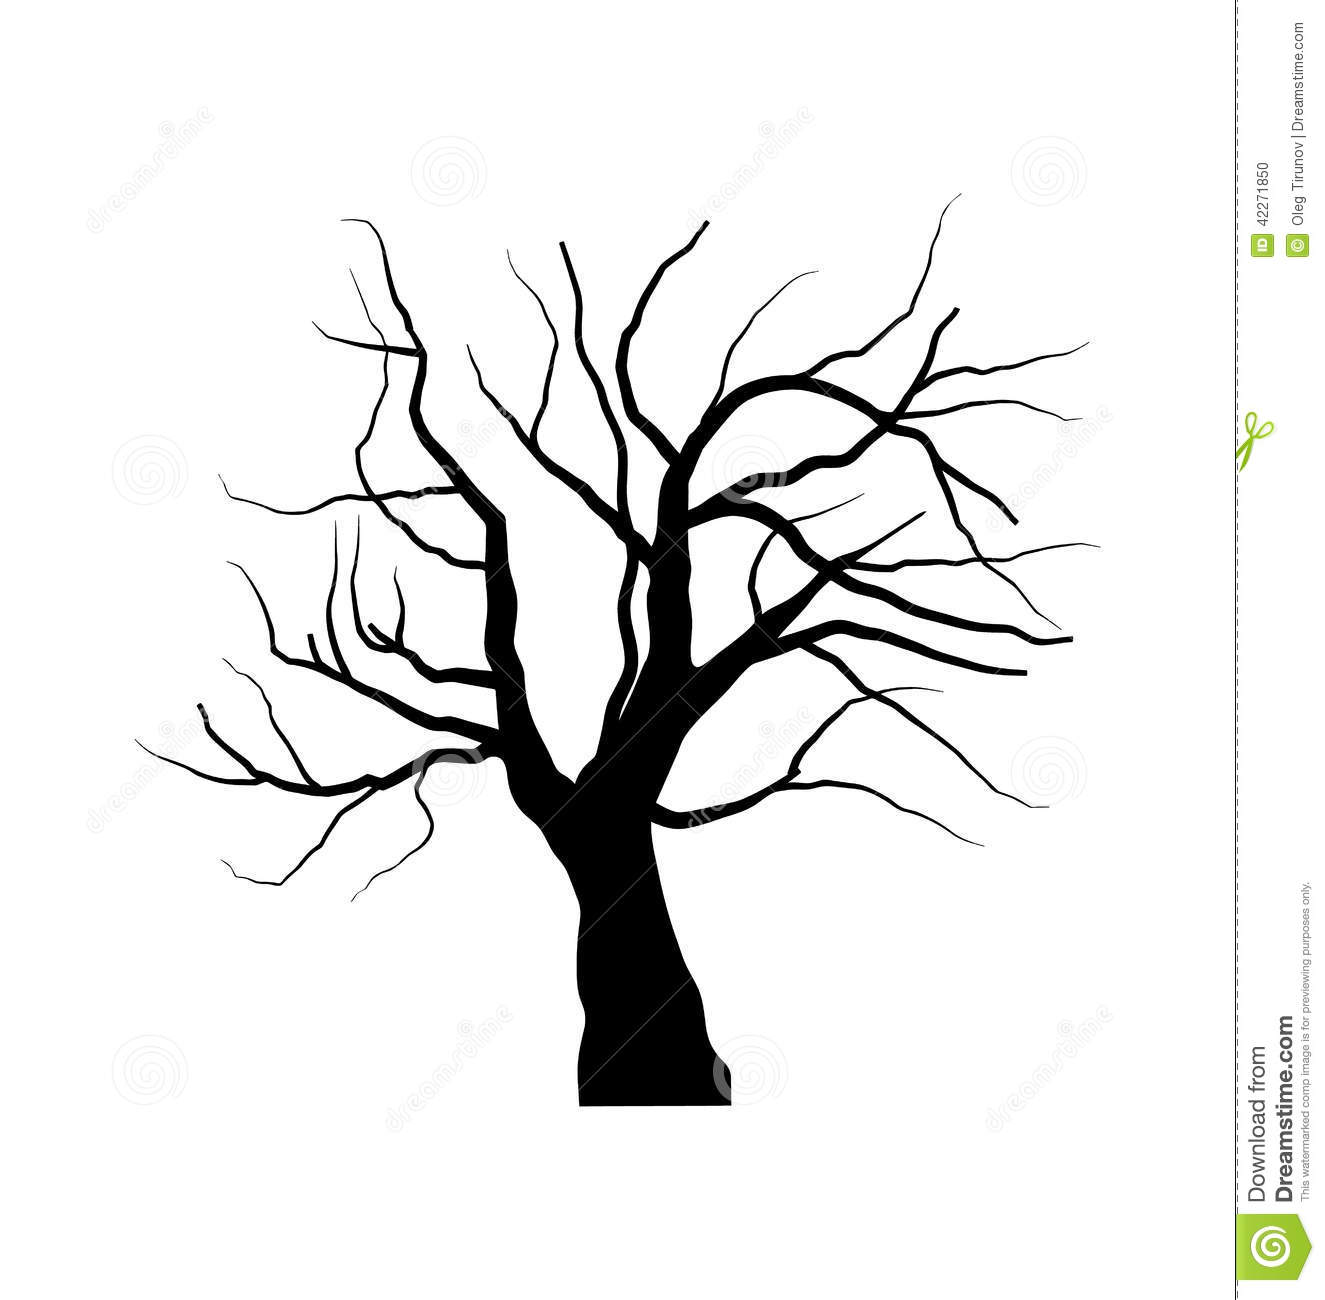 sketch of dead tree without leaves isolated on white backgroun